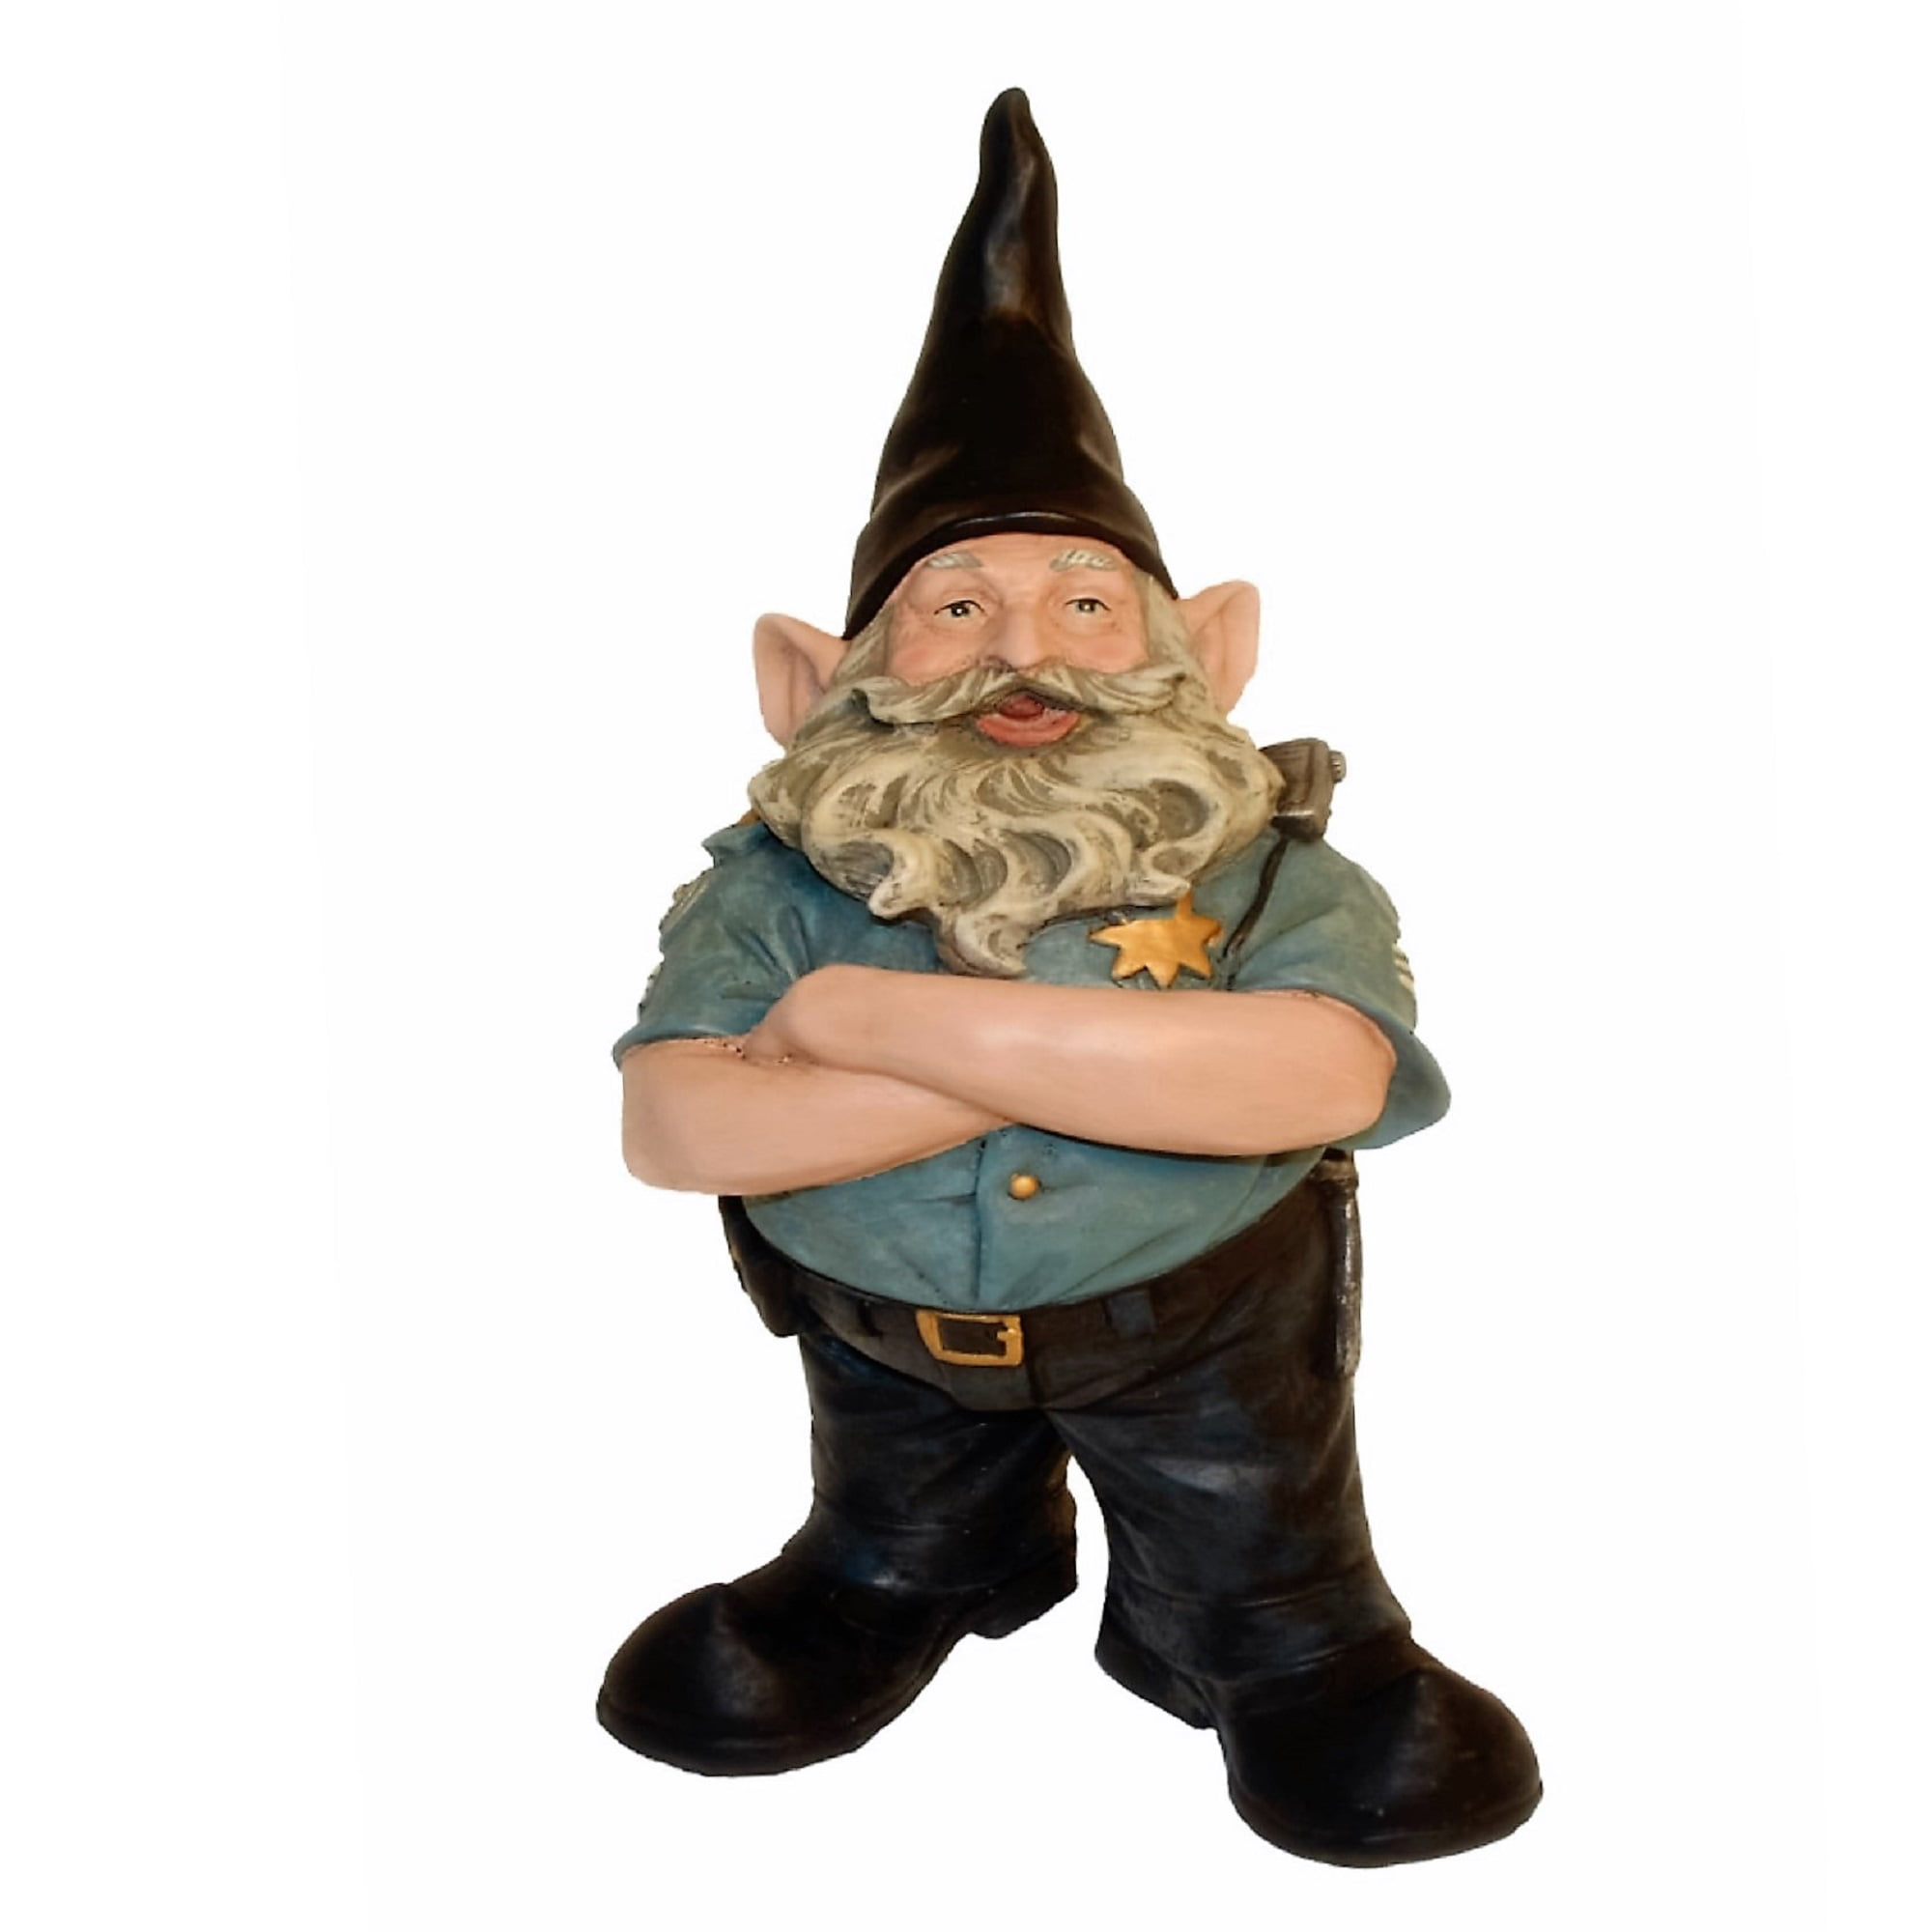 "Nowaday Gnomes ""Policeman the Hero"" Garden Gnome Police Officer Cop Figurine... by GSI Homestyles"